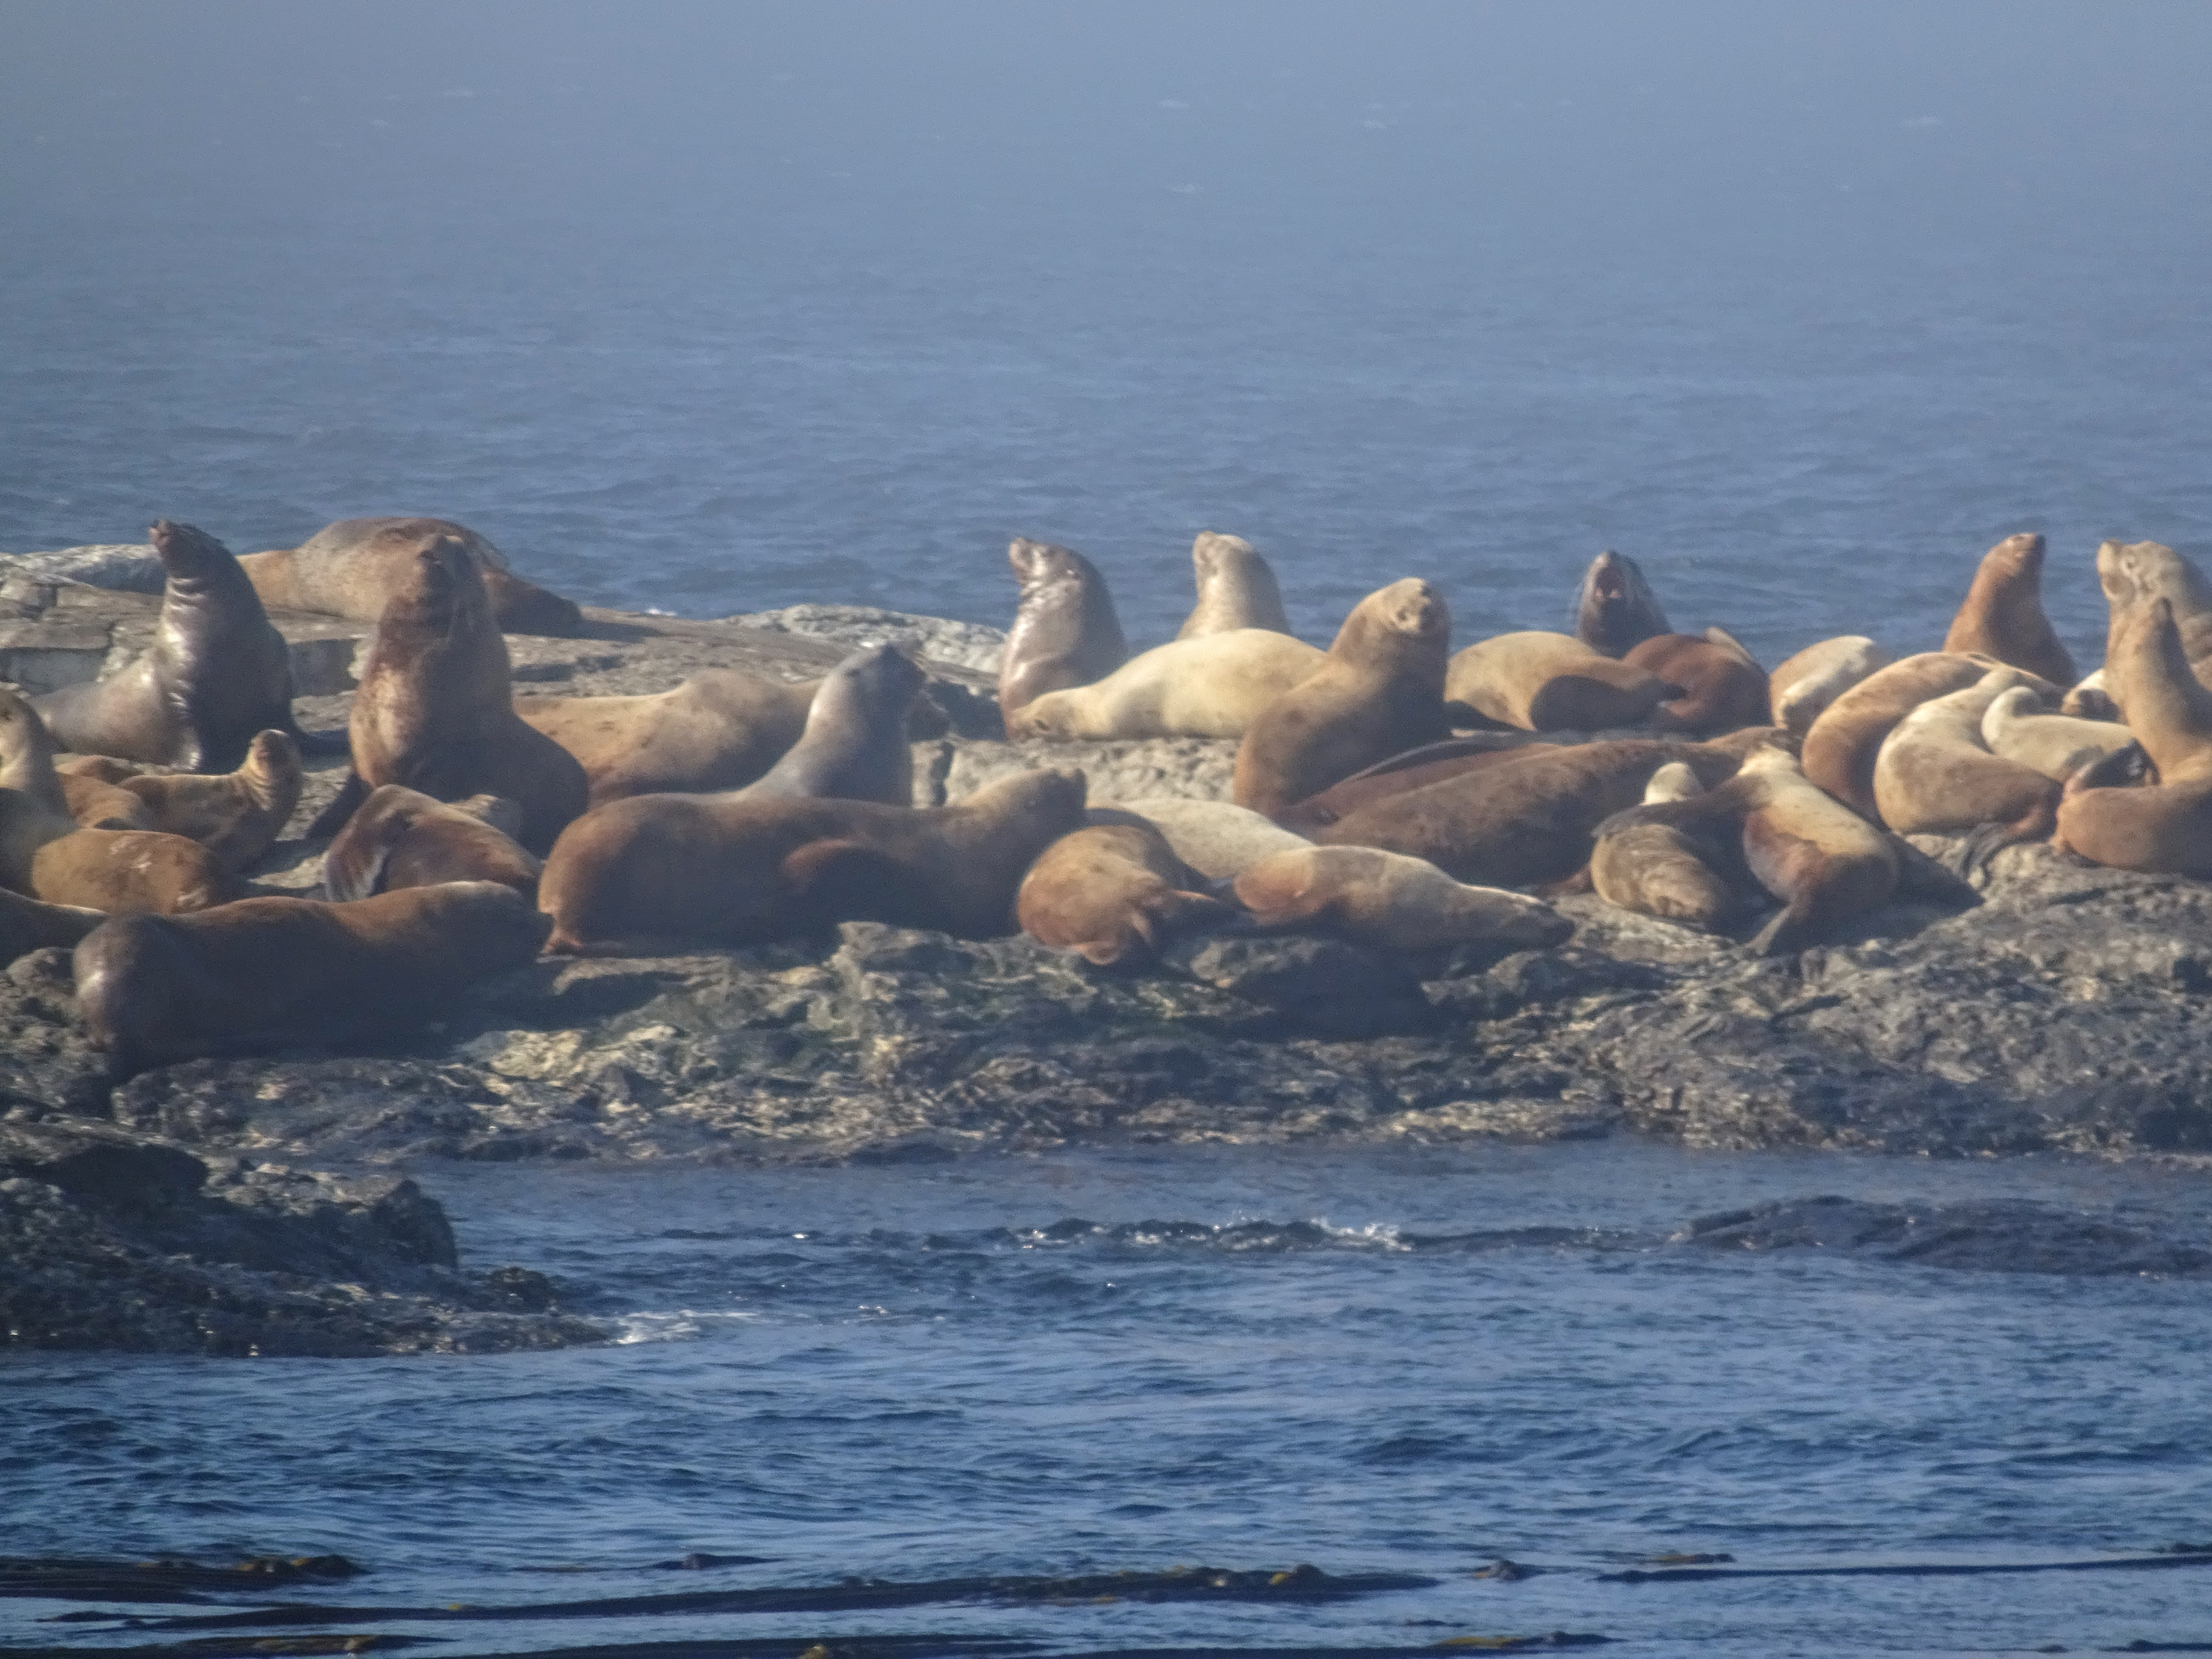 Anacortes whale watching - Sea Lions At Race Rocks